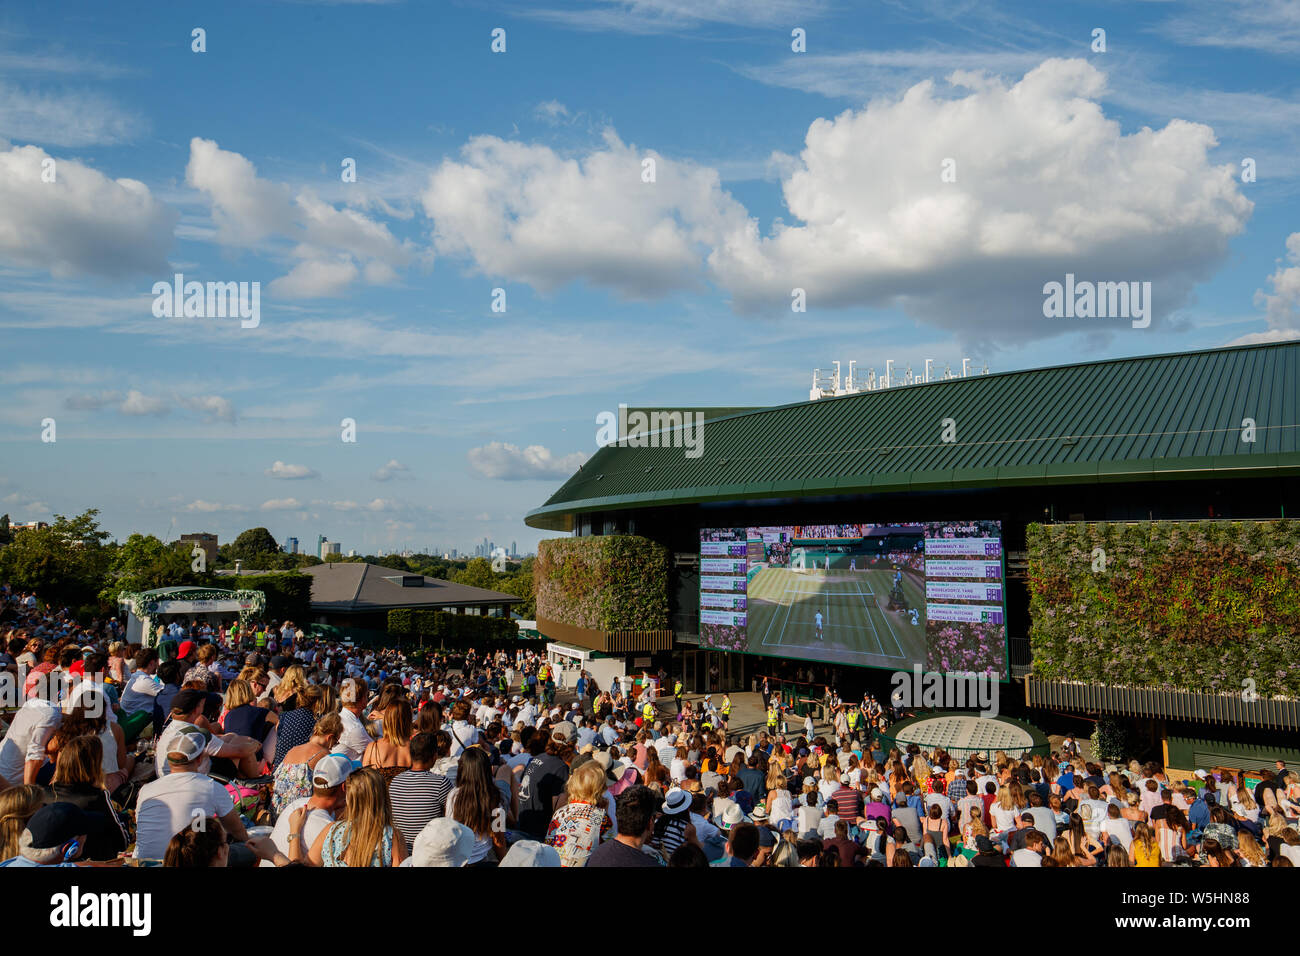 Fans and spectators on Henman Hill , Murray Mound or Aorangi Hill with the big screen on No.1 Court during The Championships at Wimbledon 2019. Stock Photo